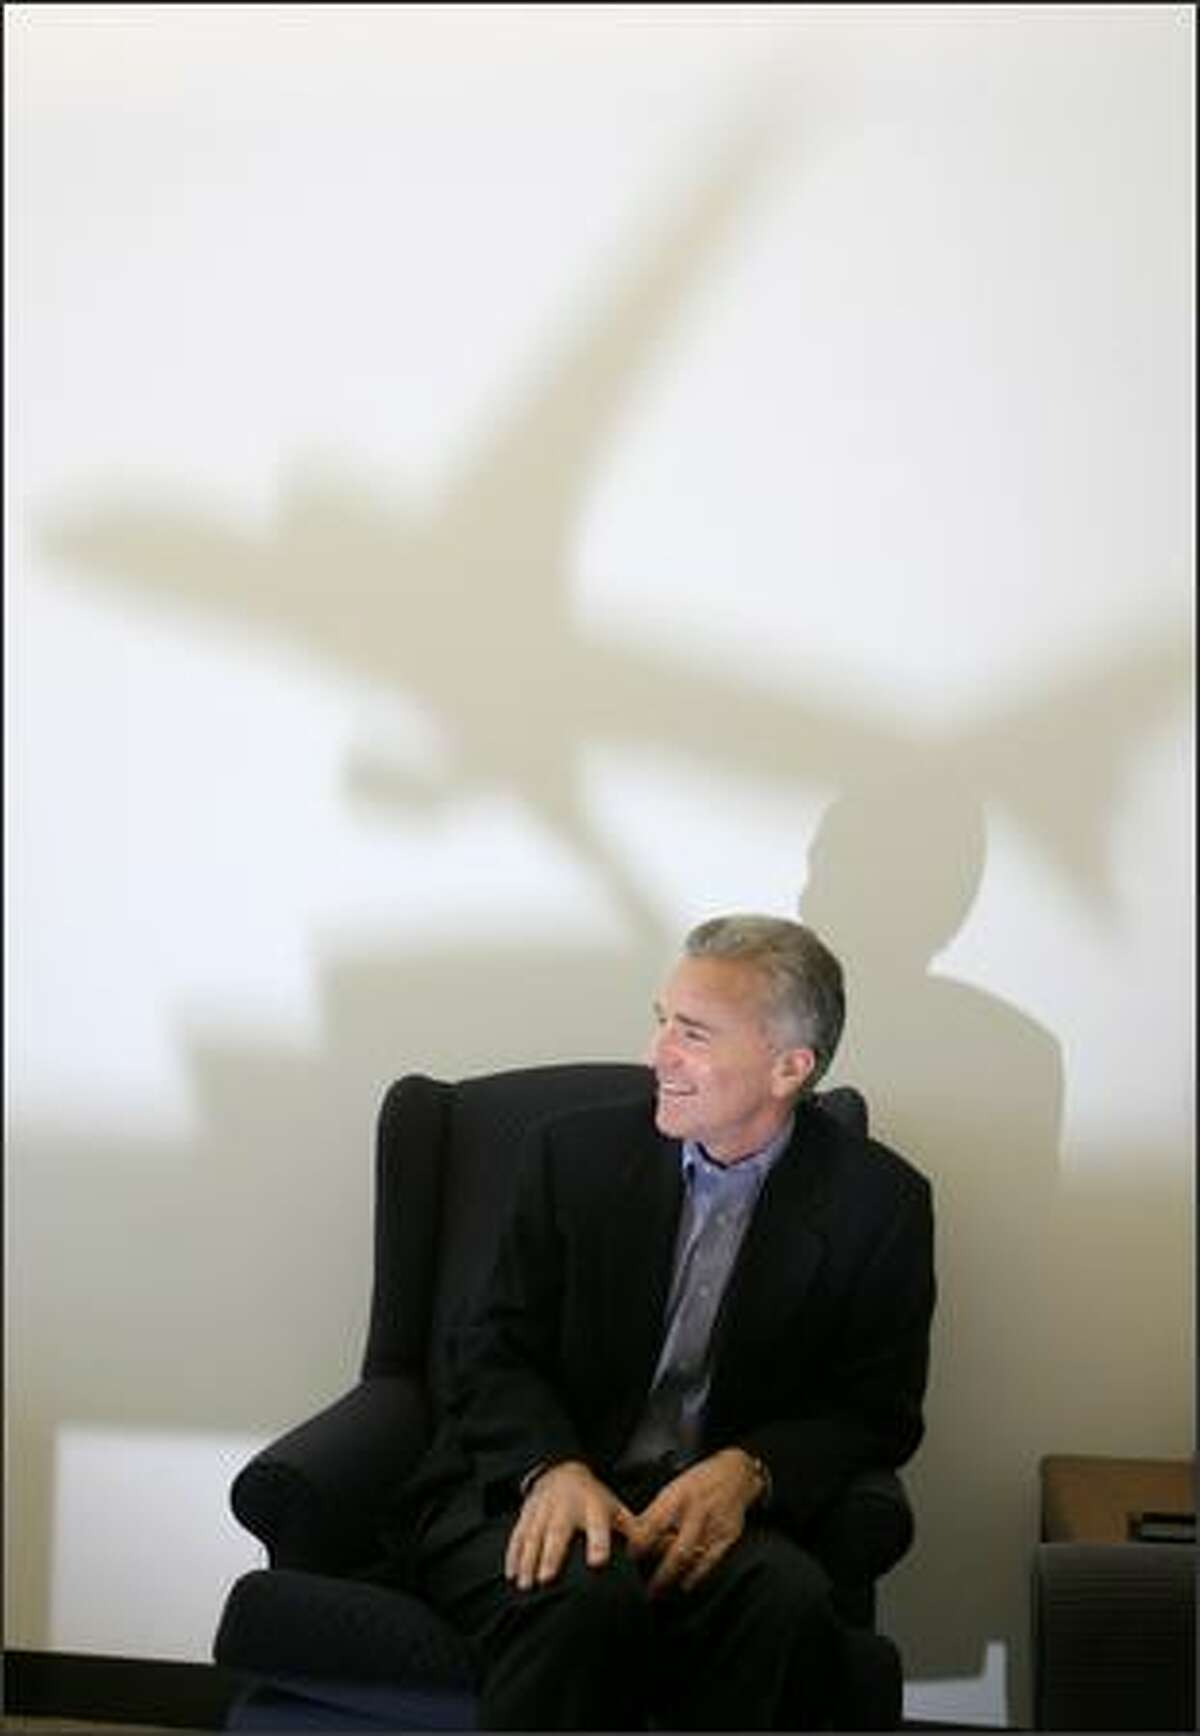 Doug Kight, Boeing's new labor relations chief, is photographed at his Renton office.Eklund: I used a small airplane model on a table and put a flash in front of it to cast the shadow on the wall. Also got some nice light on Kight's face as well.